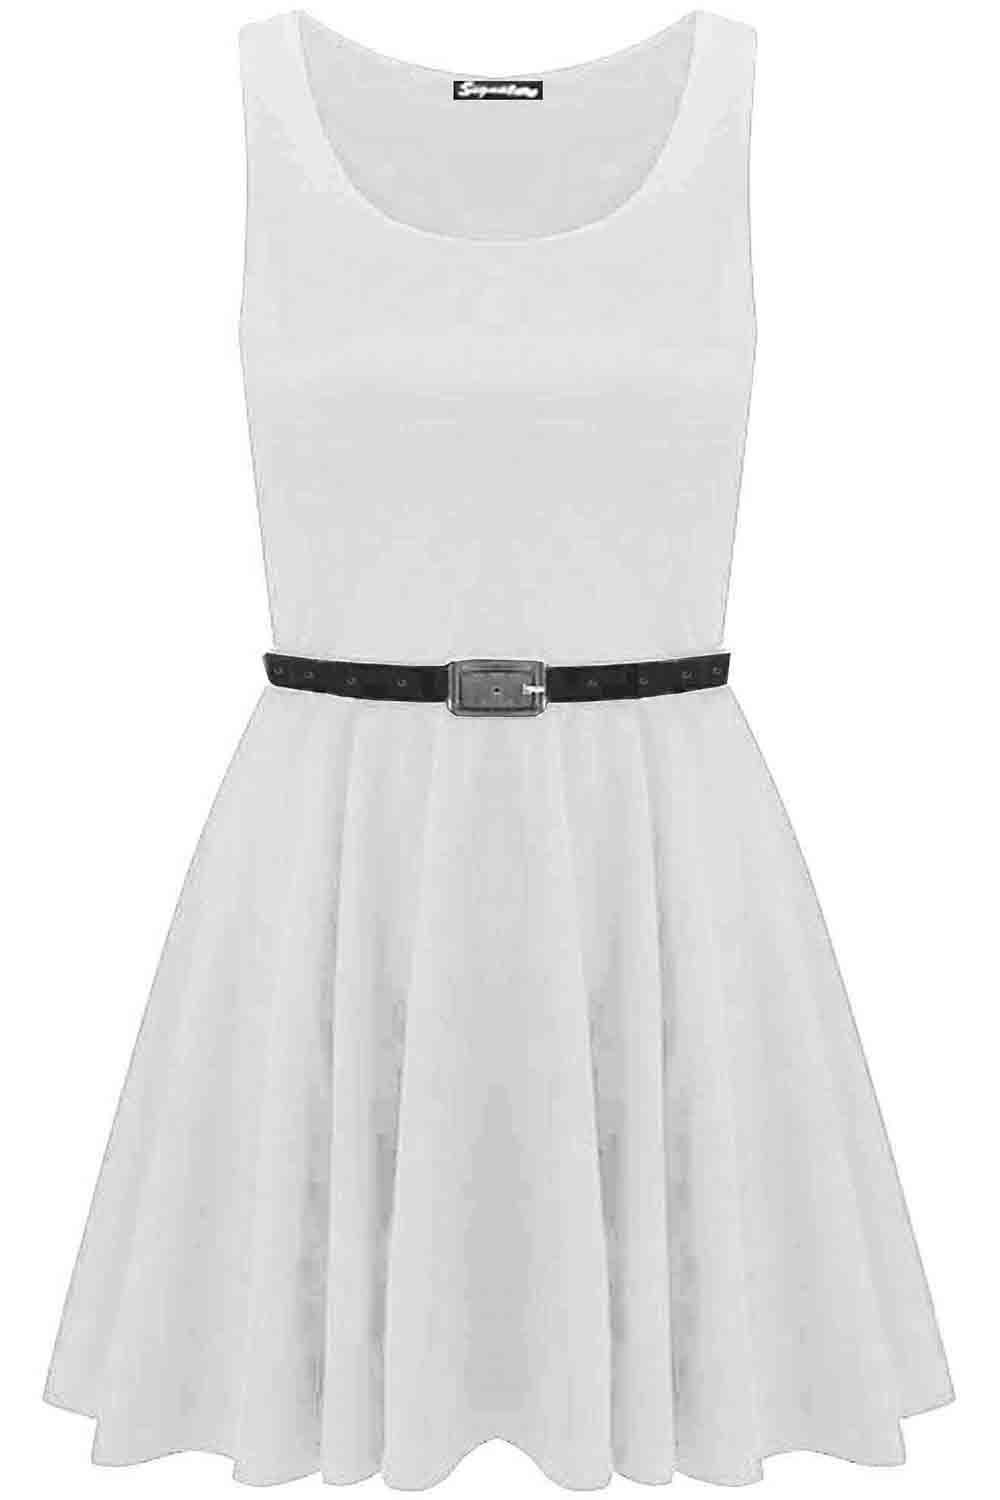 New-Womens-Ladies-Belted-Sleeveless-Franki-Flared-Party-Swing-Skater-Dress-Top thumbnail 3